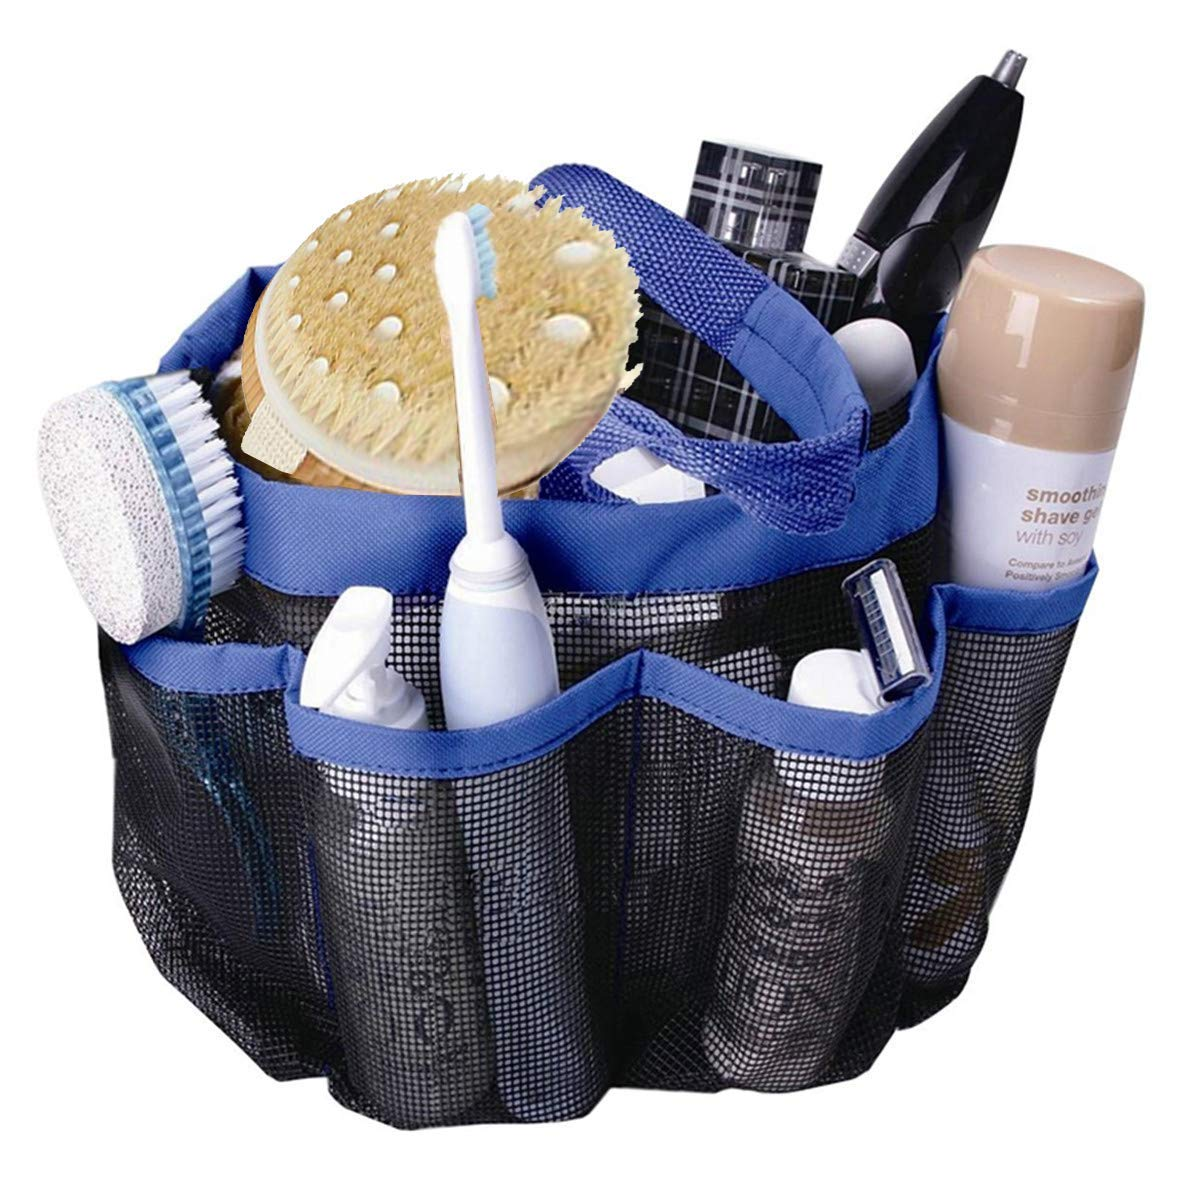 Portable Caddy Toiletry and Bath Organizer Pocket Shower Caddy Tote Mesh Shower Caddy, Oxford Hanging Toiletry with 8 Storage Compartments for Shampoo, Conditioner, Soap and Other Bathroom Accessories